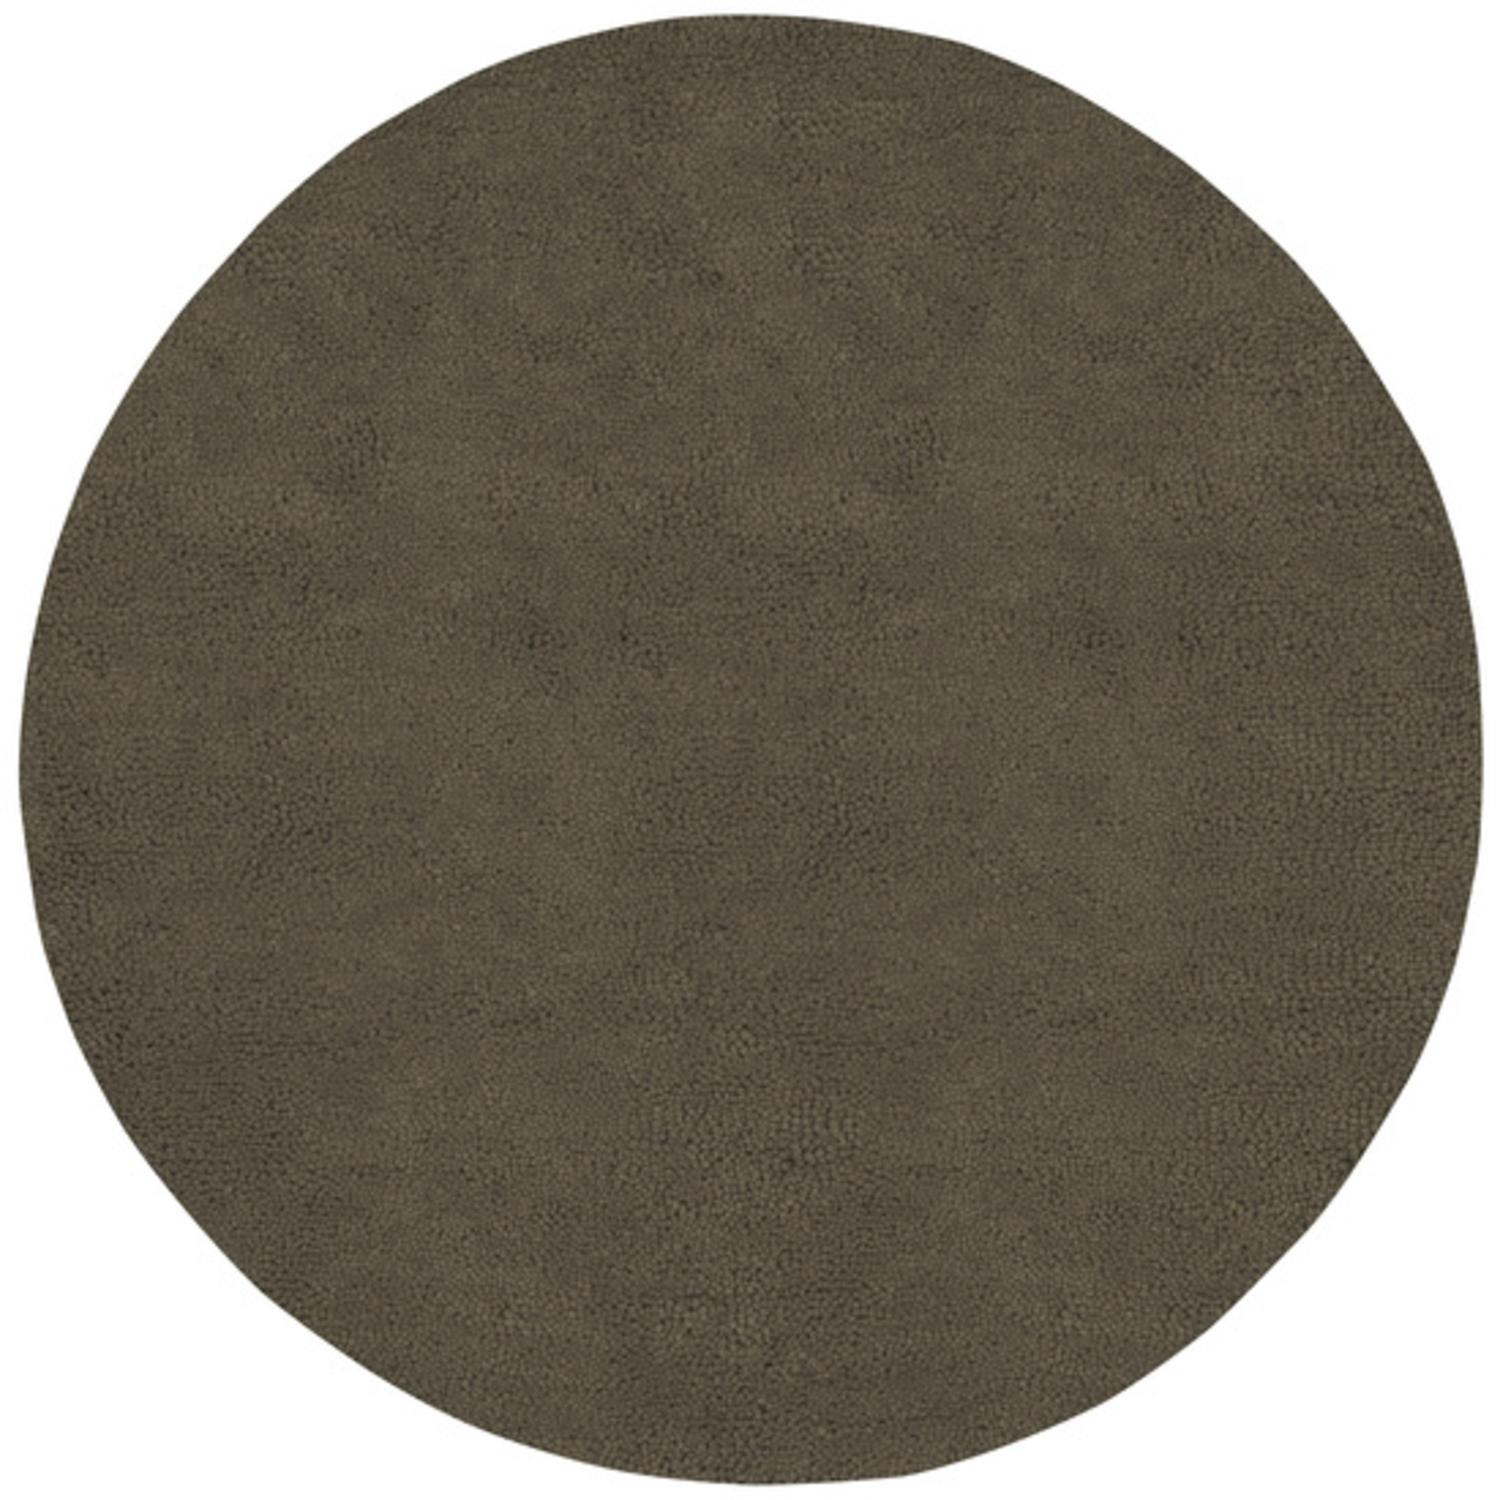 10' Solid Umber Brown Hand Woven Round New Zealand Wool Shag Area Throw Rug